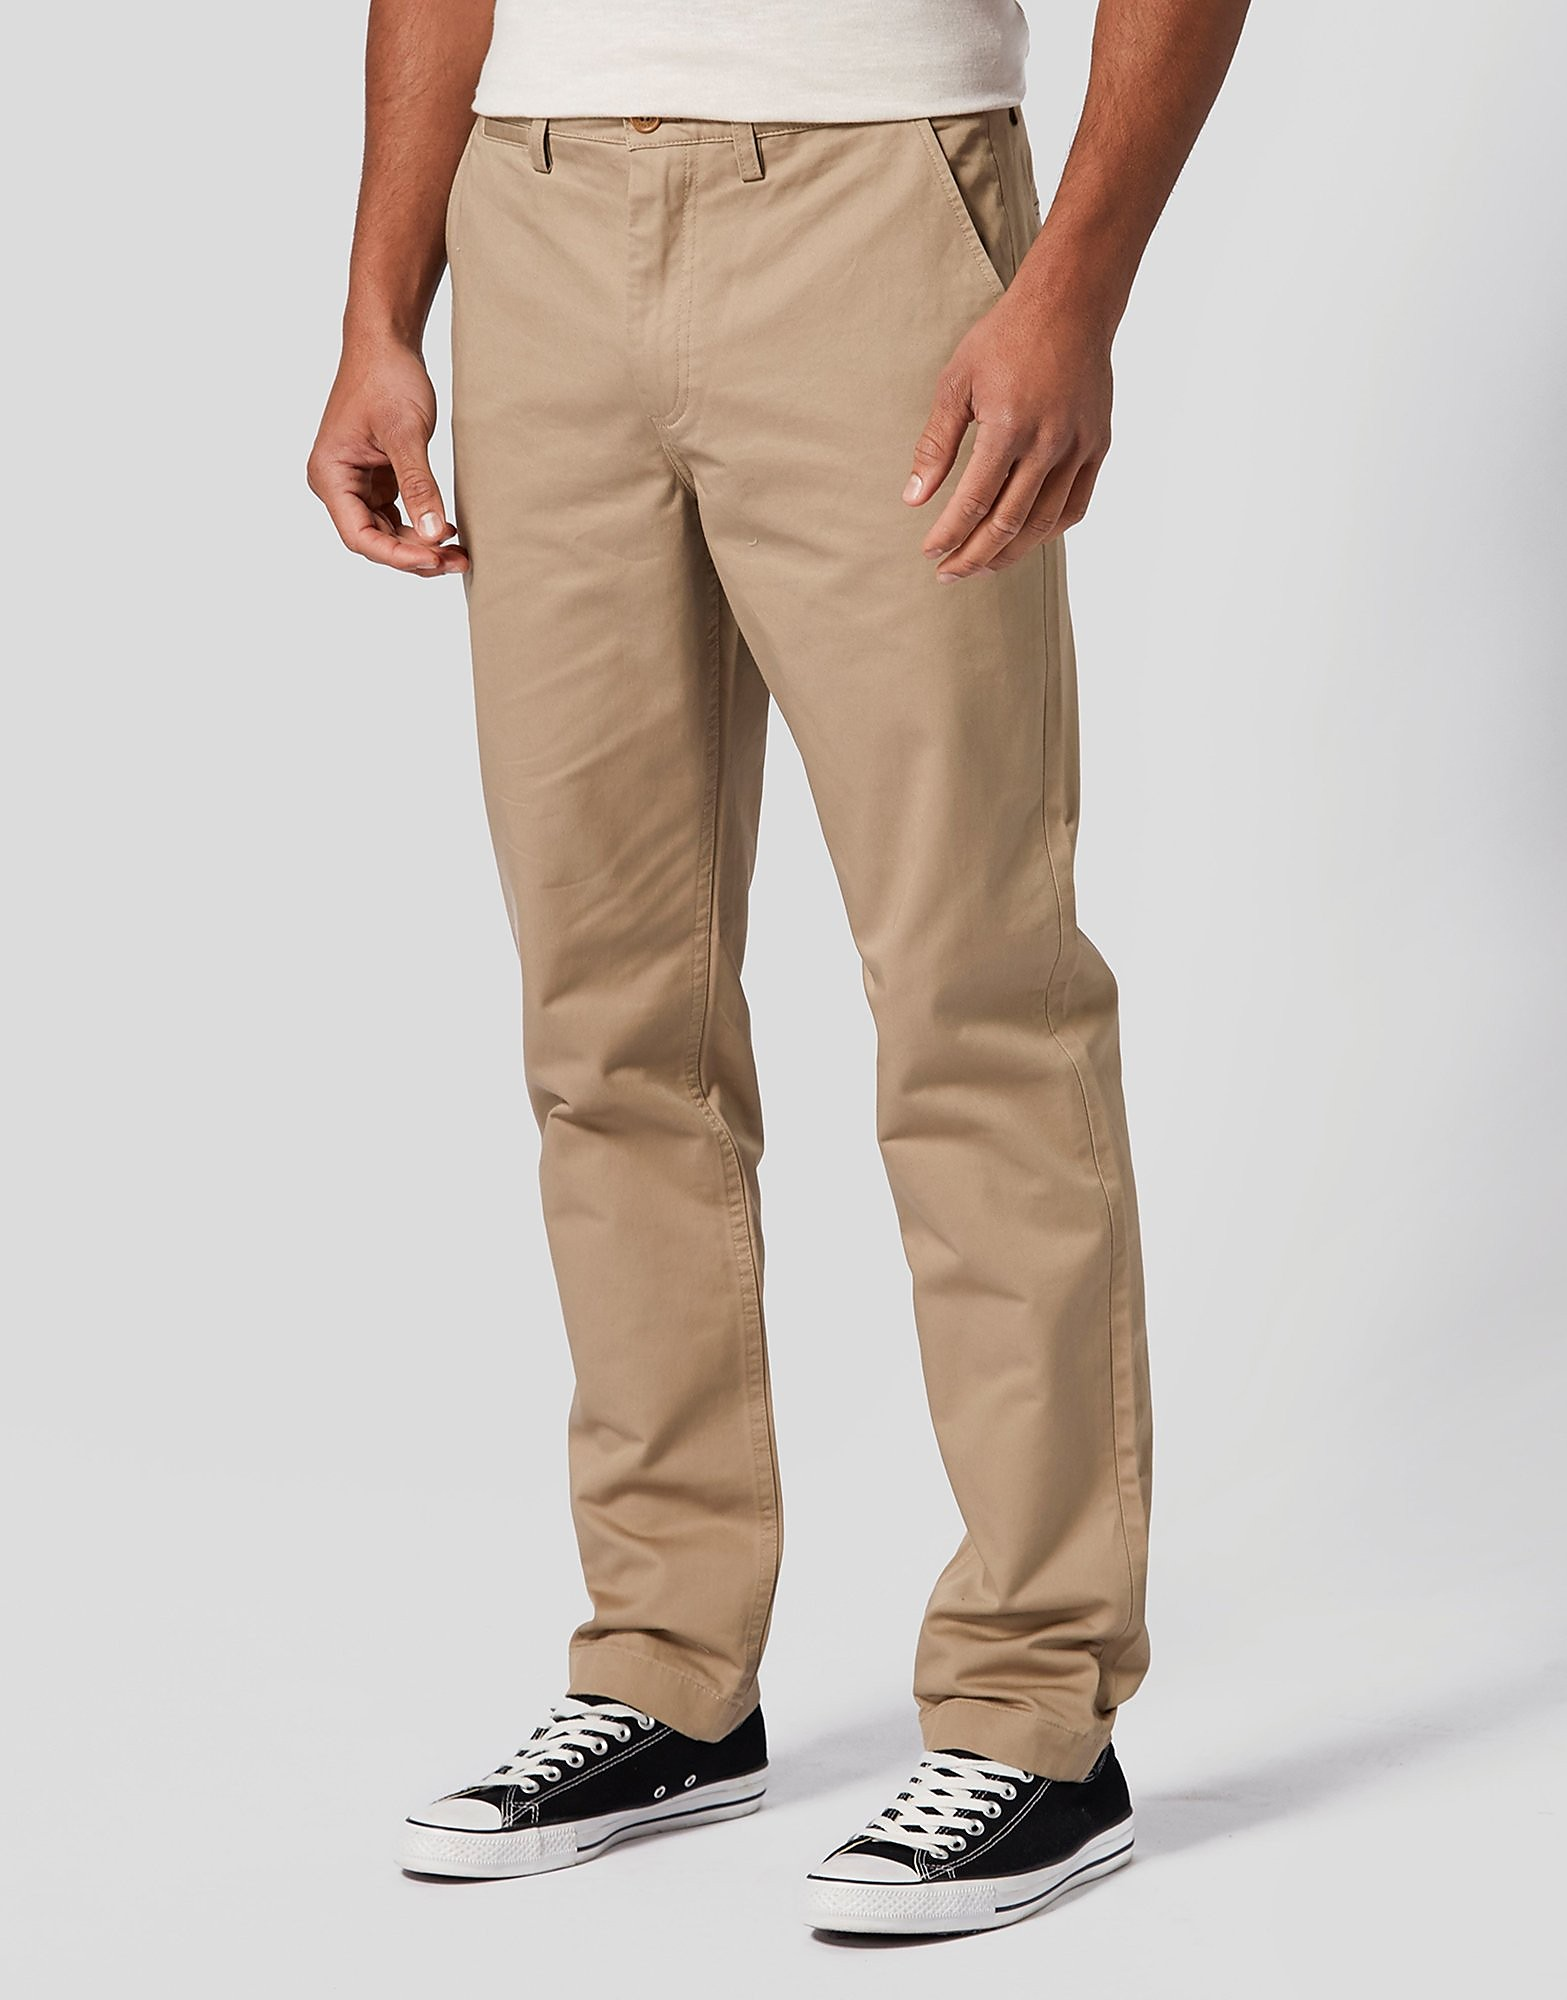 Fred Perry Twill Chino